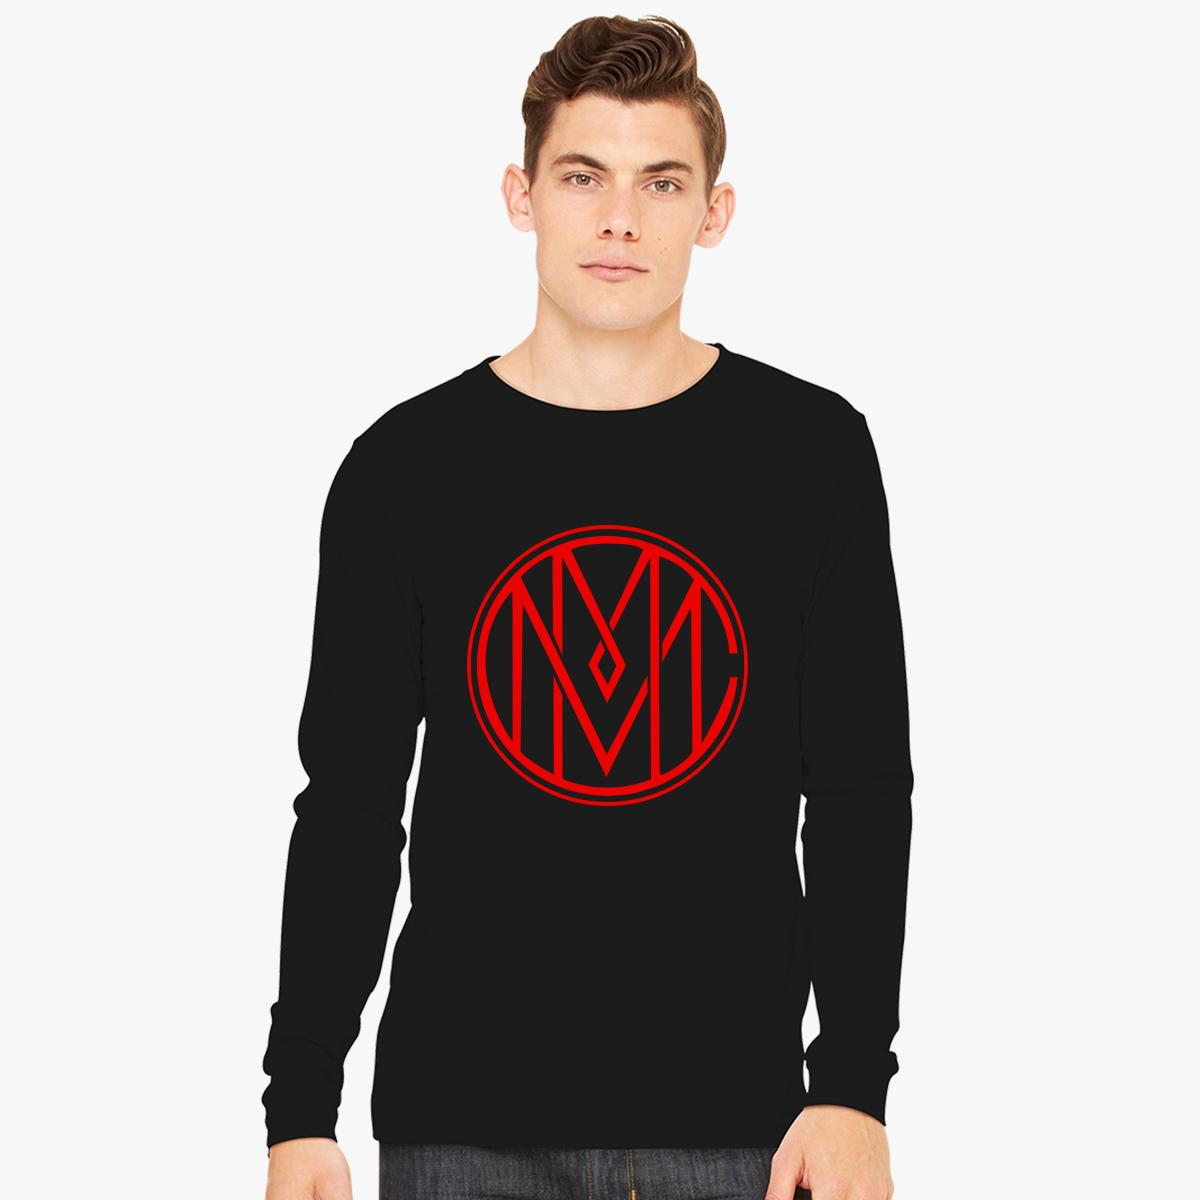 Marilyn manson symbols long sleeve t shirt customon marilyn manson symbols long sleeve t shirt buycottarizona Images